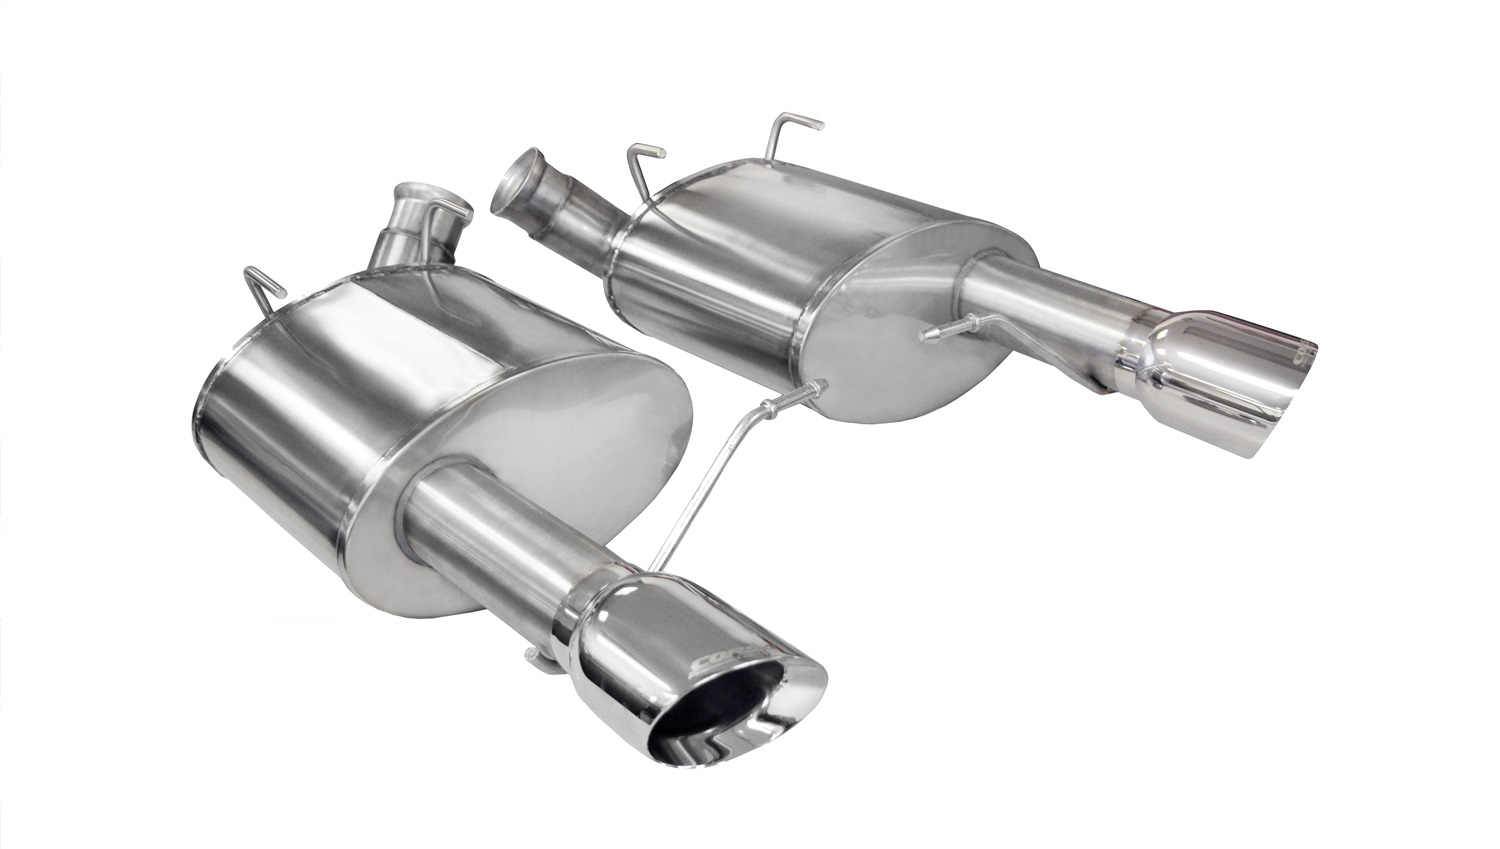 Corsa Performance 14317 Xtreme Axle-Back Exhaust System Fits 11-14 Mustang